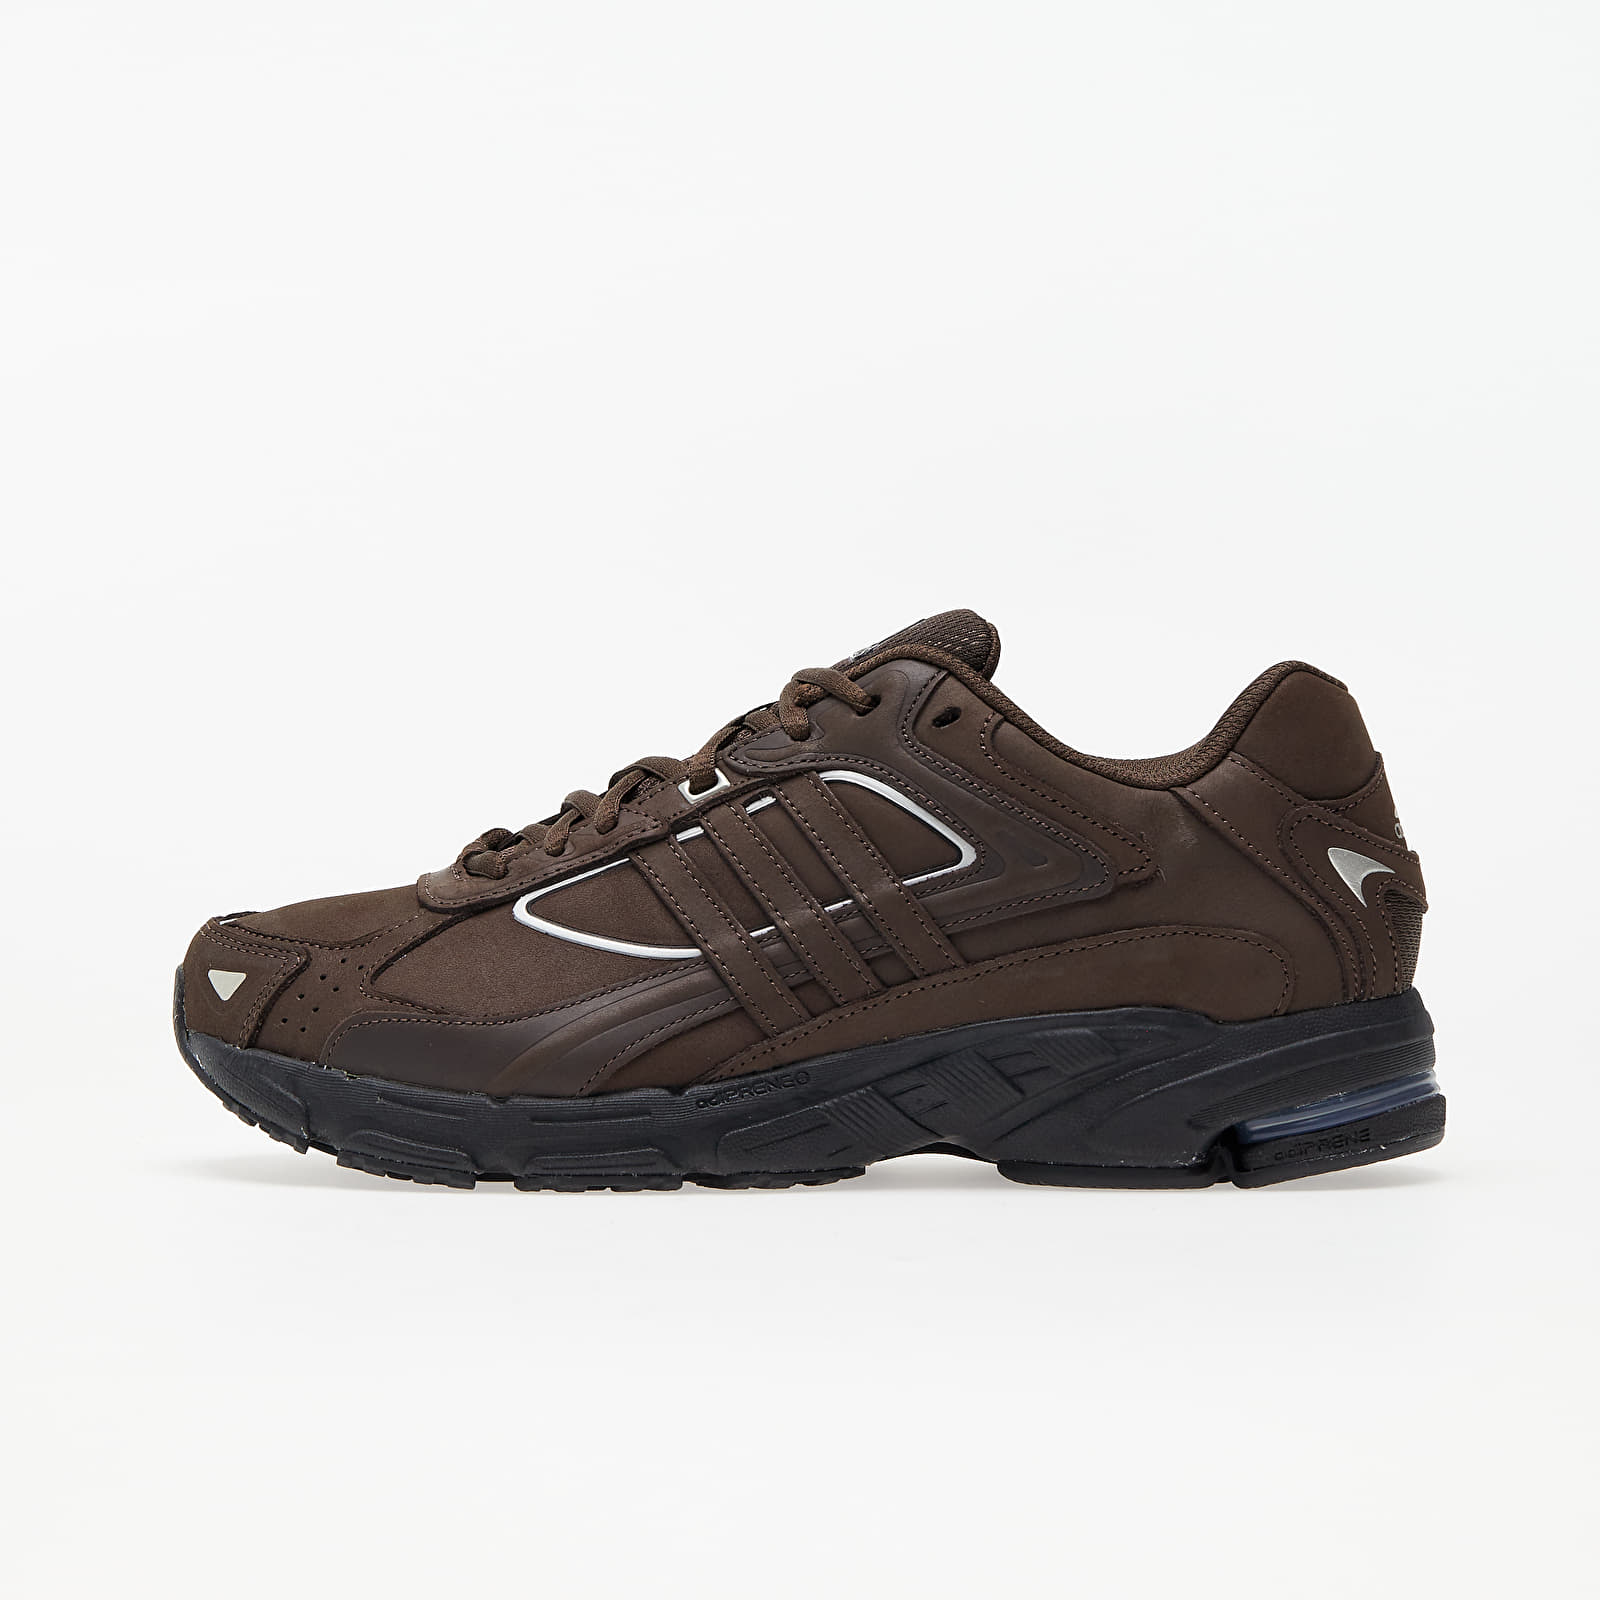 adidas Response Cl Brown/ Core Black/ Brown FX7727